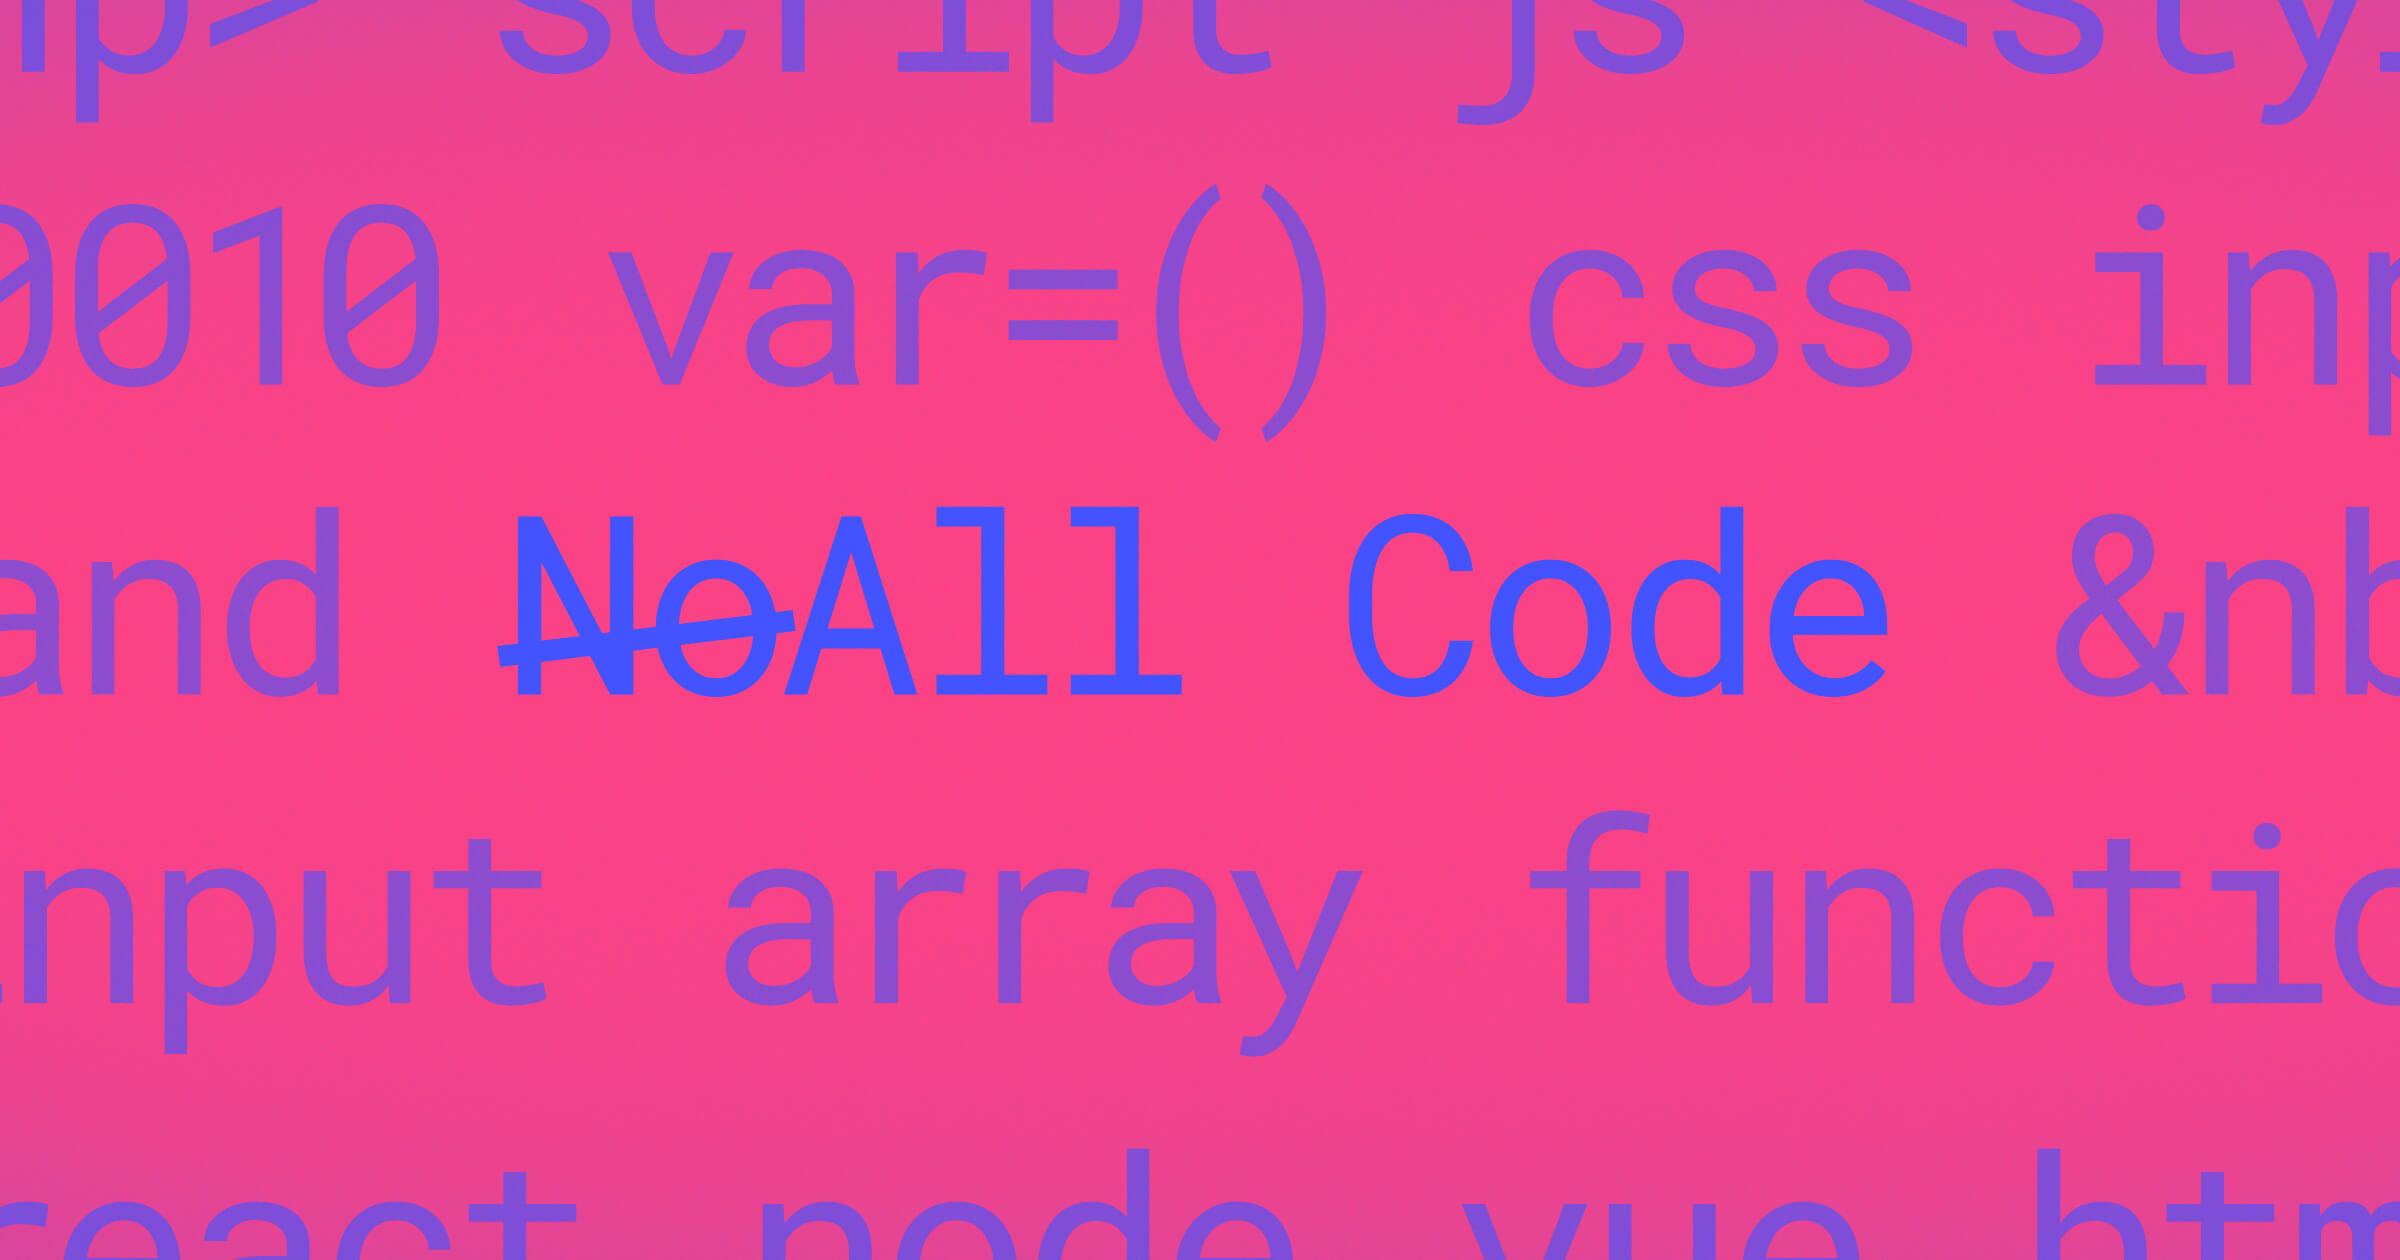 """A pink background with monospaced large text in lines bleeding out of the image saying different code terms like array, function, css, etc. and the word """"No"""" crossed out next to """"All Code"""" in the middle."""